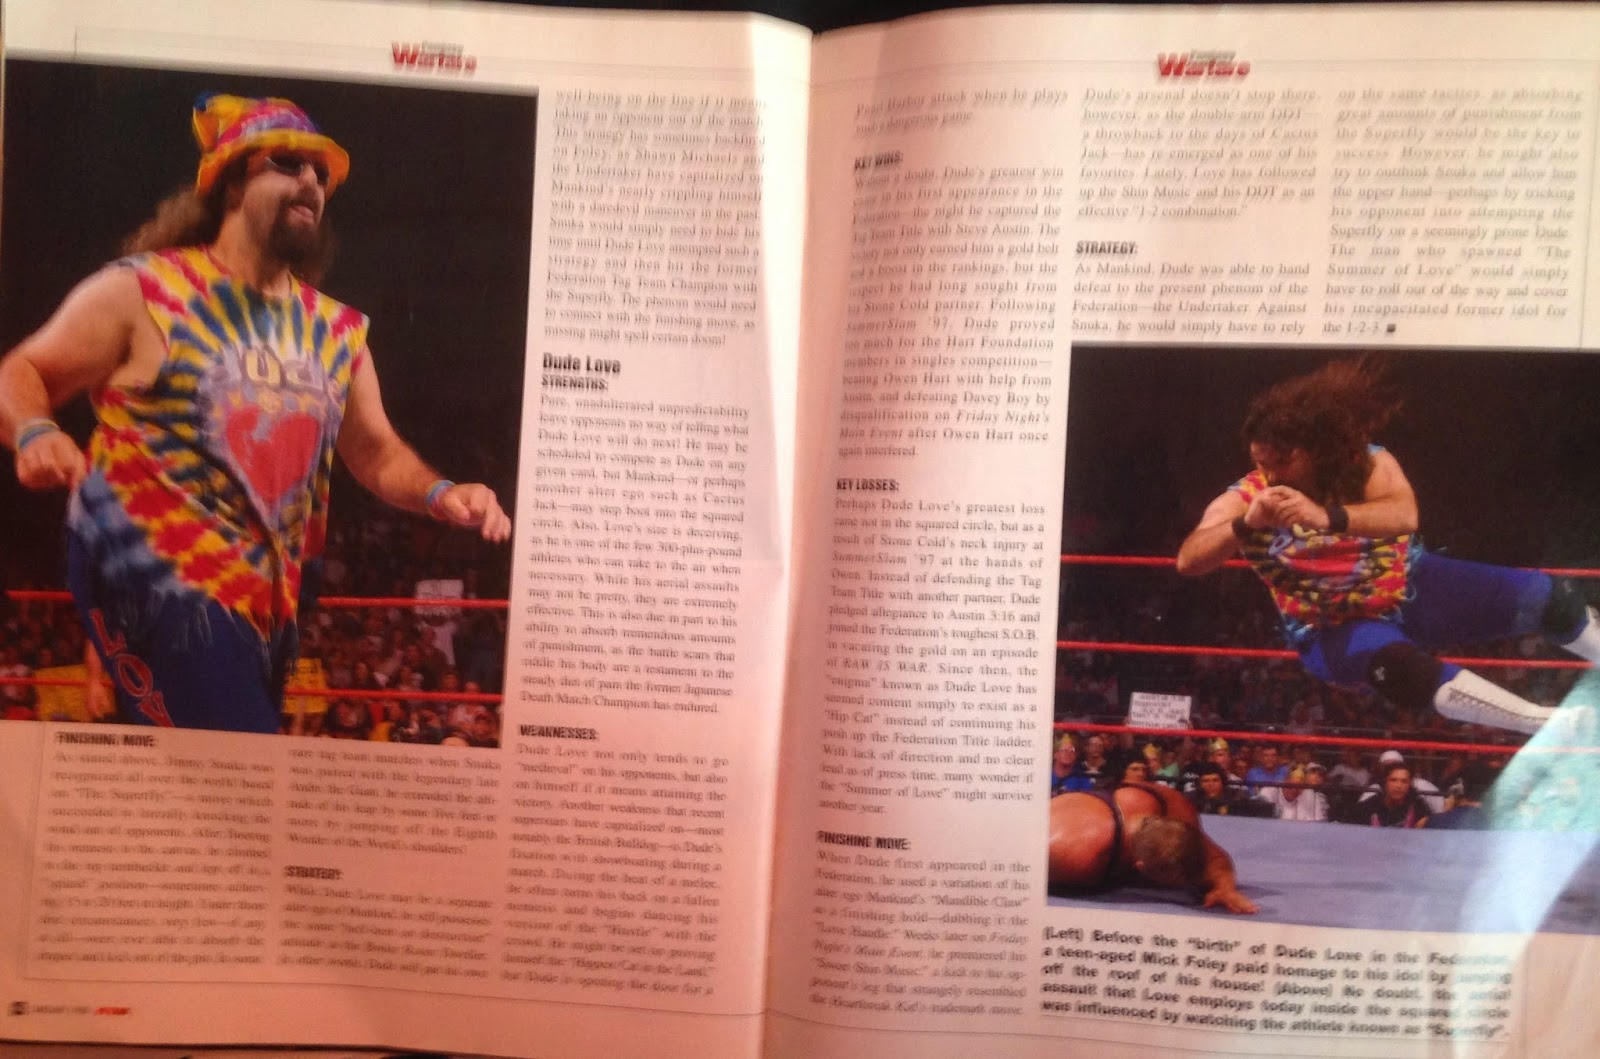 WWE: WWF RAW MAGAZINE - January 1998 - More Dude Love vs. Jimmy Snuka fantasy warfare